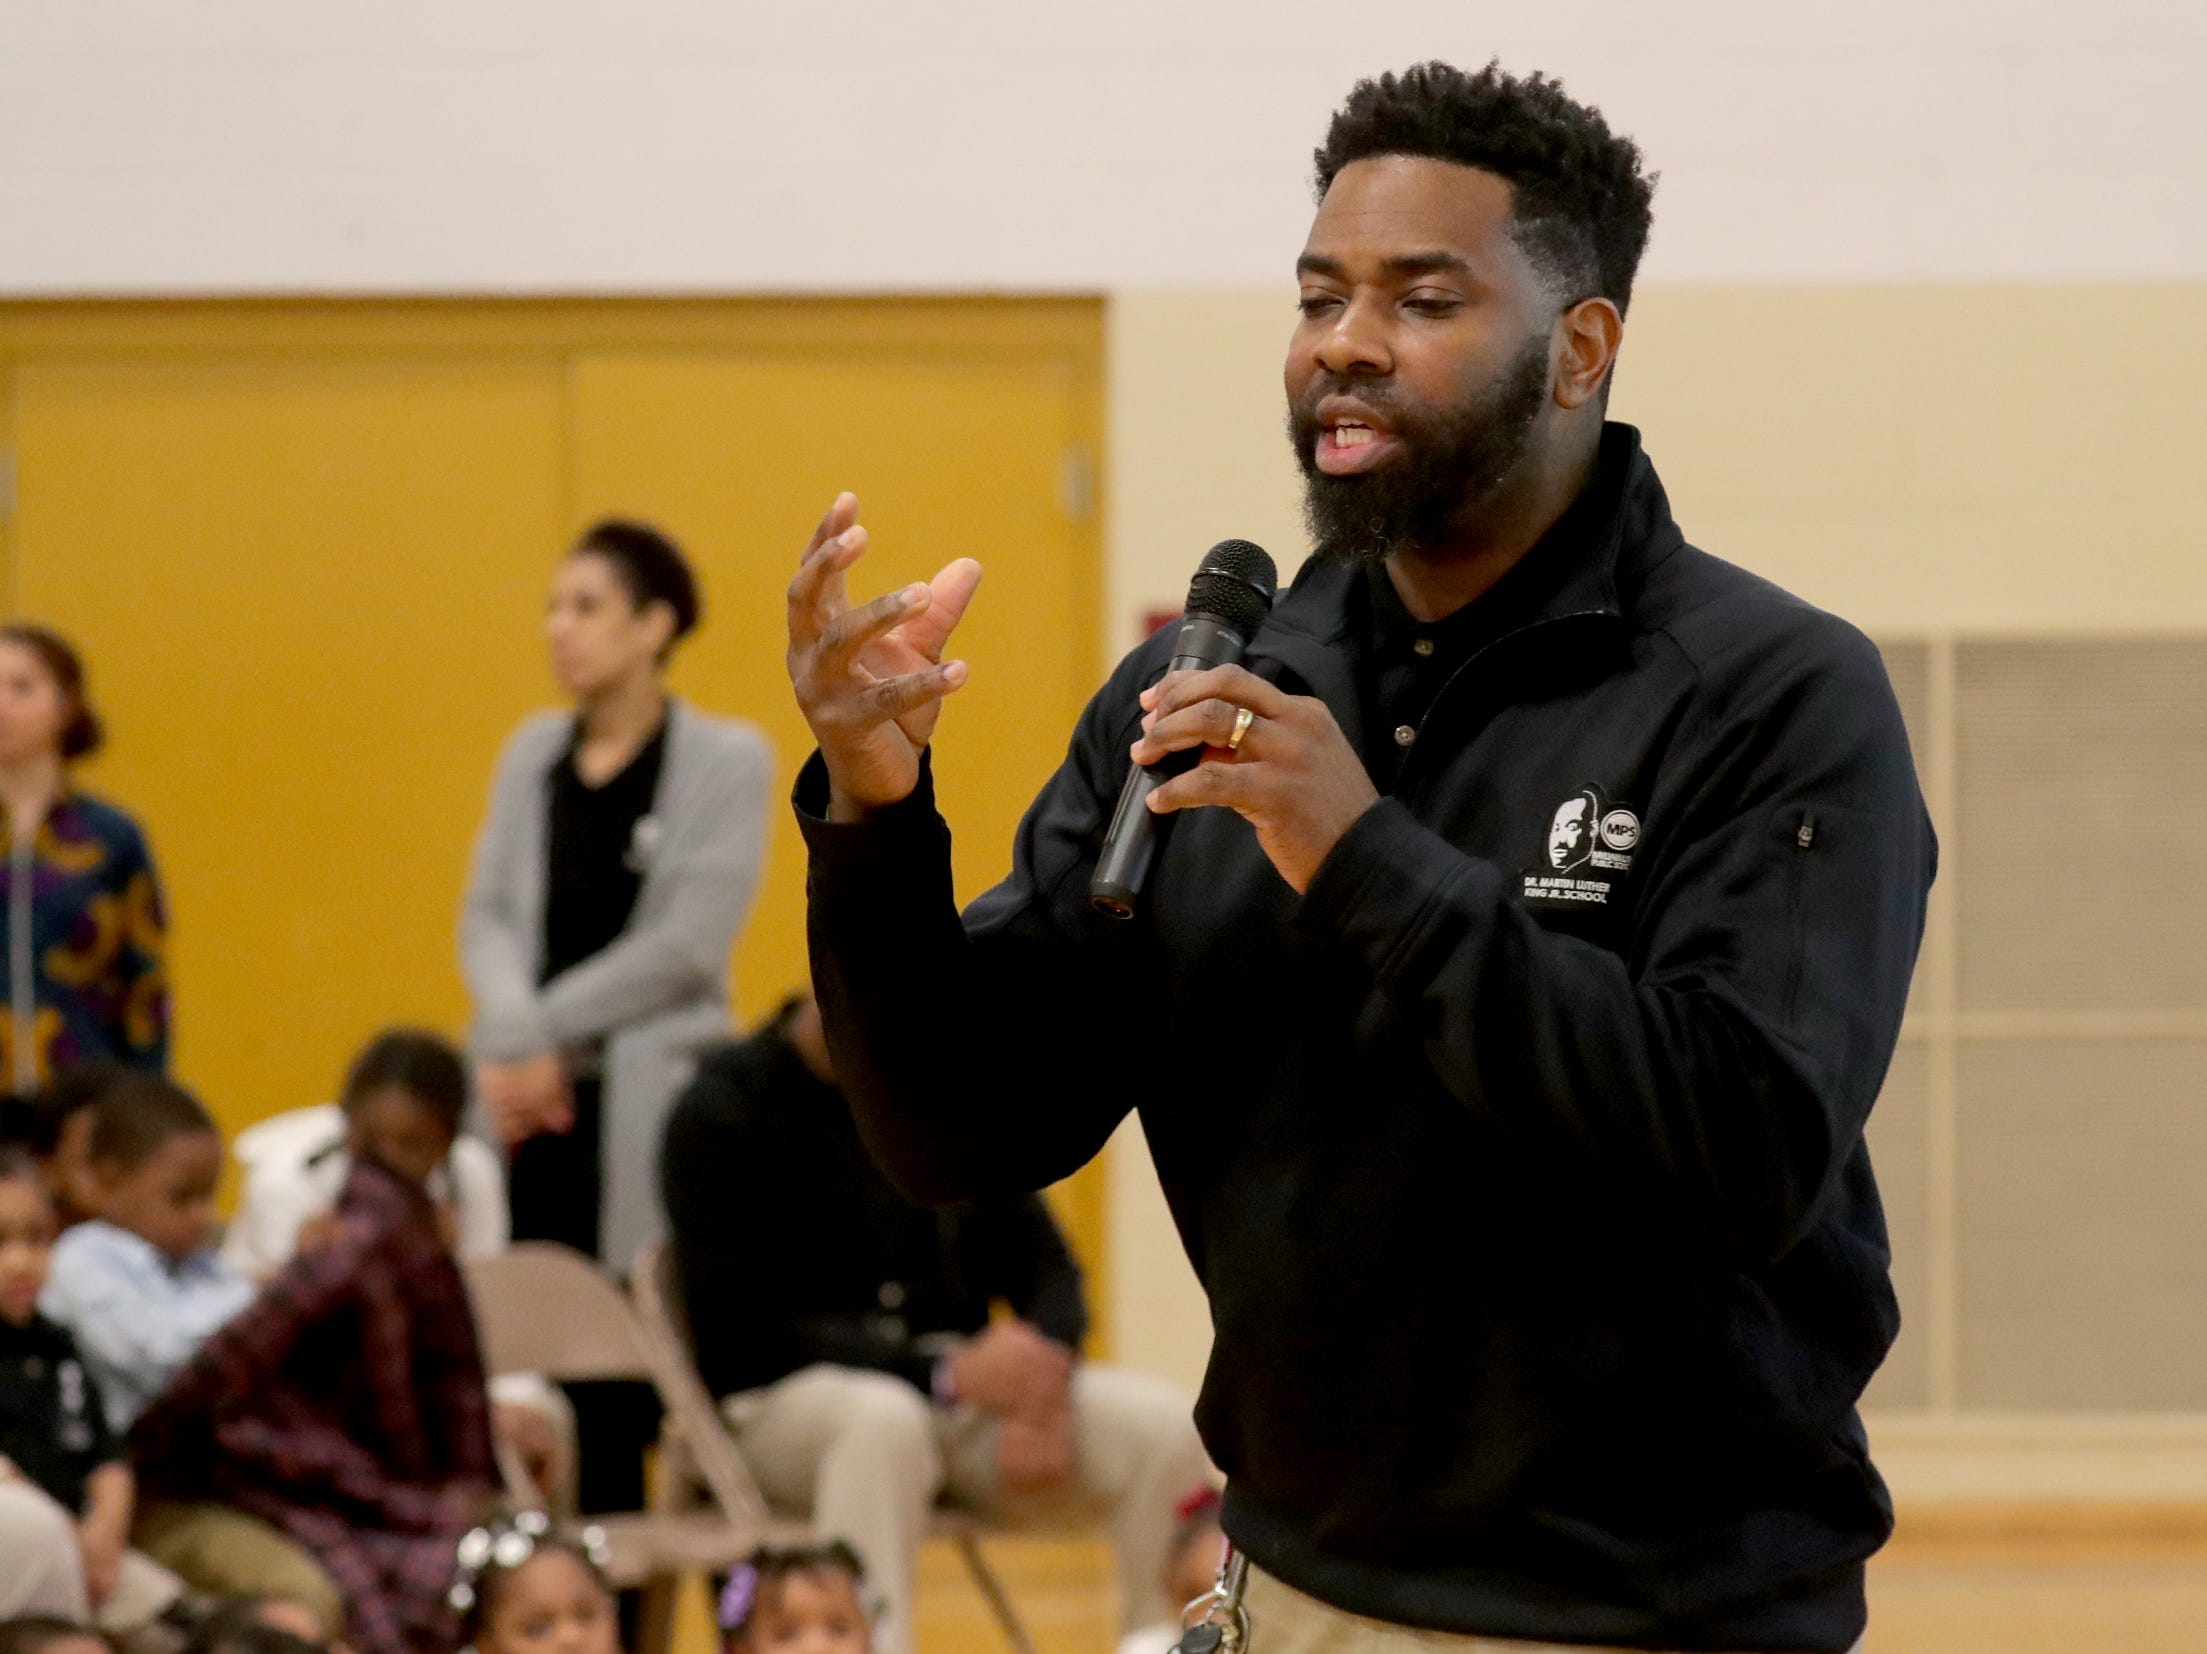 Principal Marcus Arrington speaks during the morning assembly.